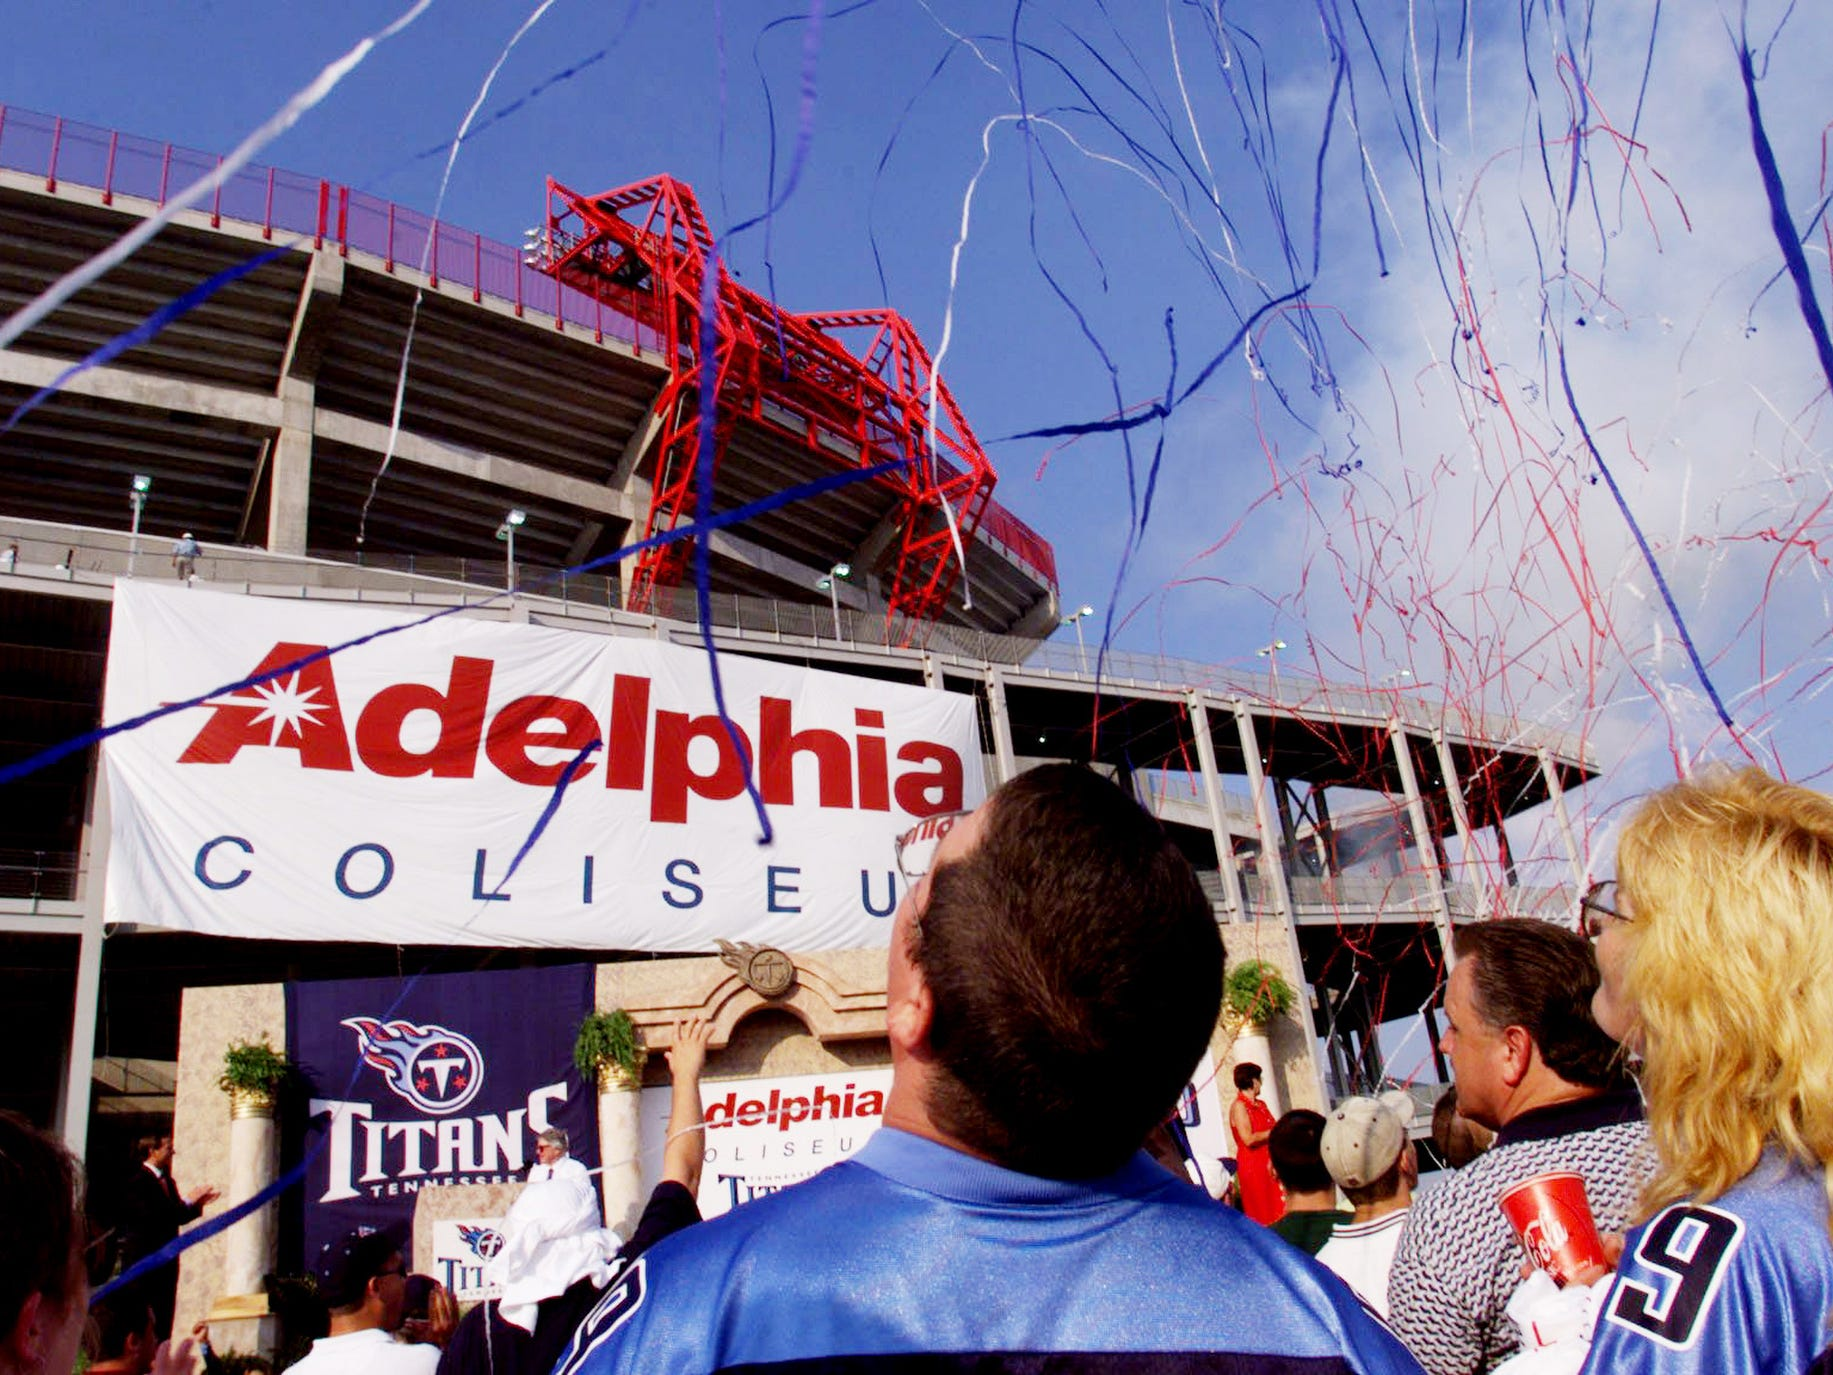 Fans watch as Tennessee Titans owner Bud Adams unveils the name of the Adelphia Coliseum July 8, 1999.